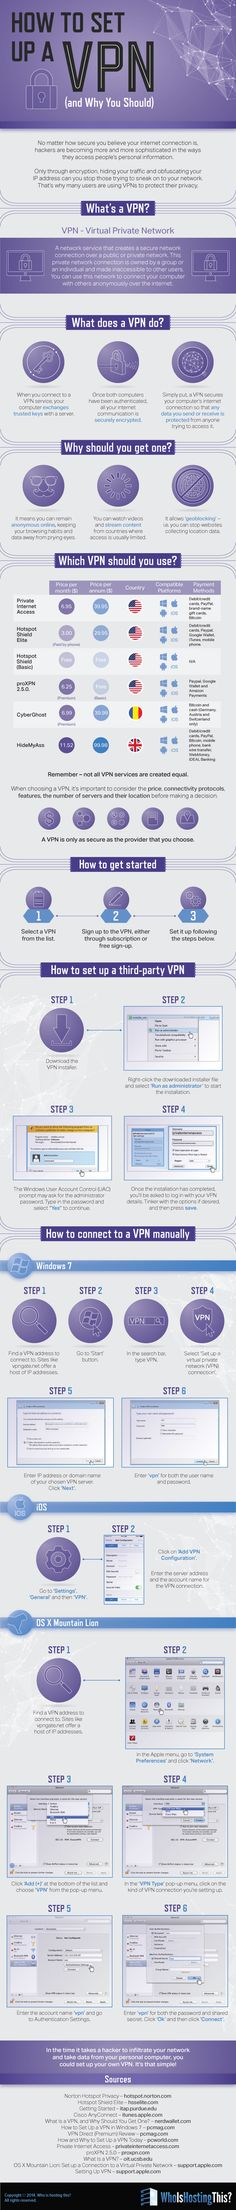 How+to+Set+Up+a+VPN+(and+Why+You+Should)+-+#infographic